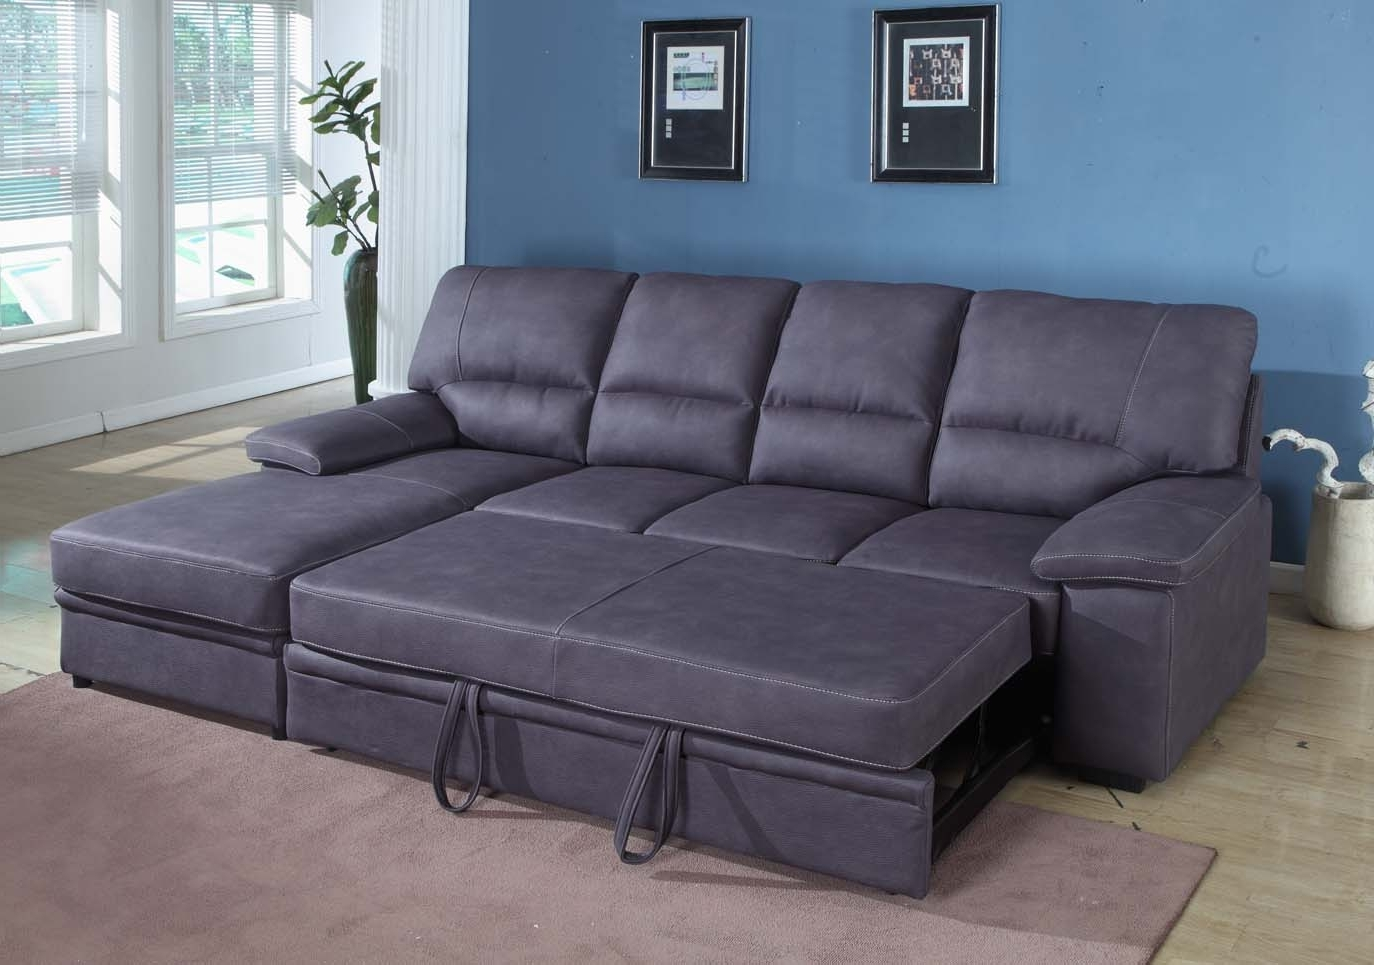 Best And Newest Loveseat Sectional With Chaise Apartment Size Sectional Sofa For Apartment Size Sectionals With Chaise (View 6 of 15)